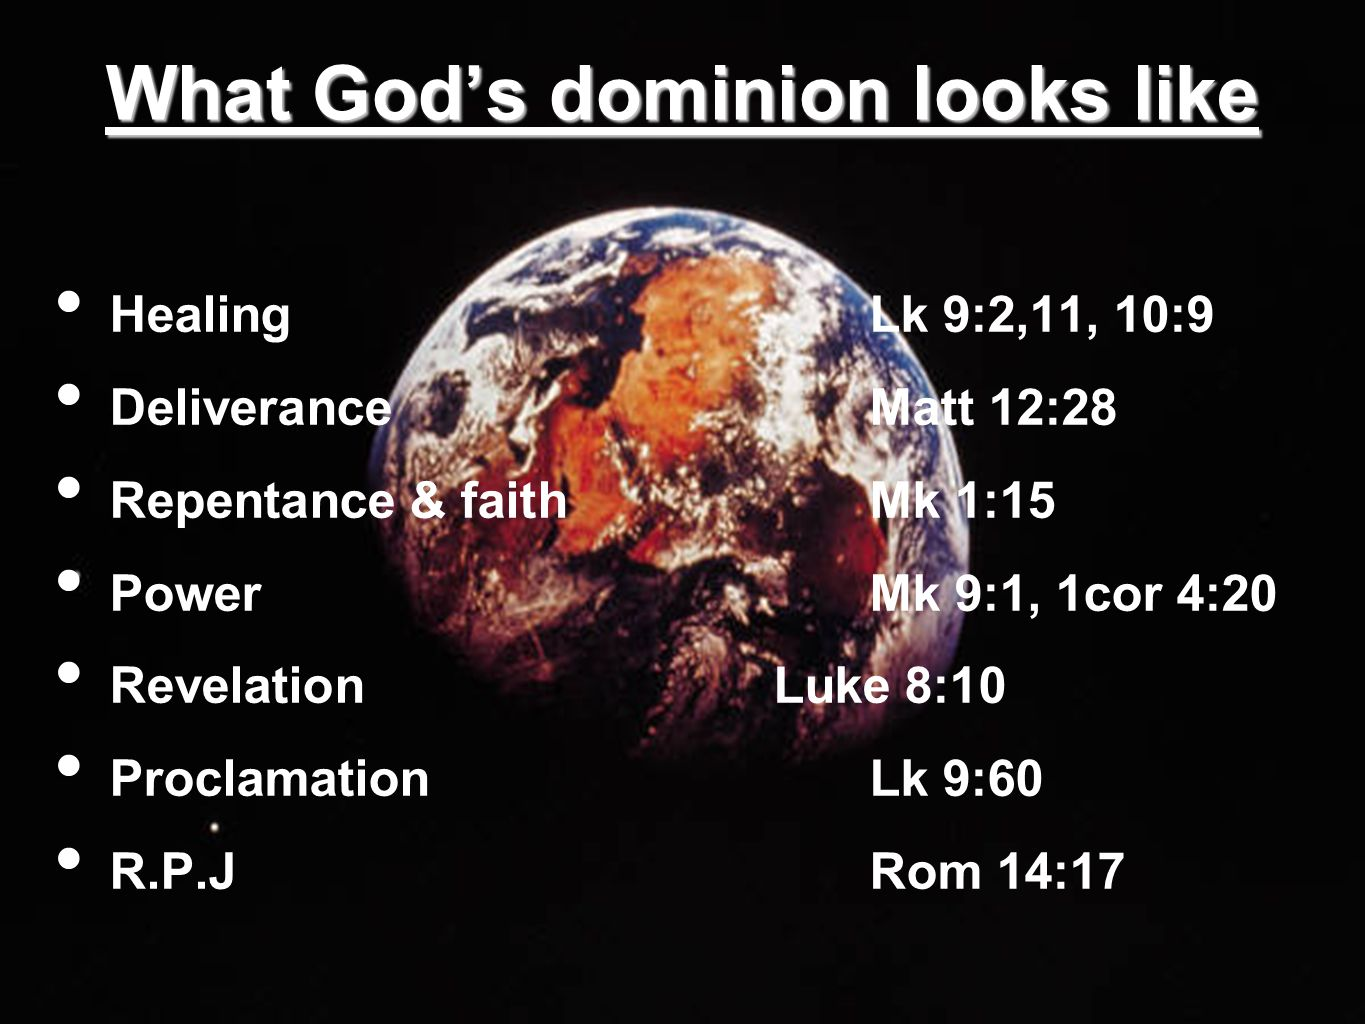 What God's dominion looks like Healing Lk 9:2,11, 10:9 Deliverance Matt 12:28 Repentance & faith Mk 1:15 Power Mk 9:1, 1cor 4:20 Revelation Luke 8:10